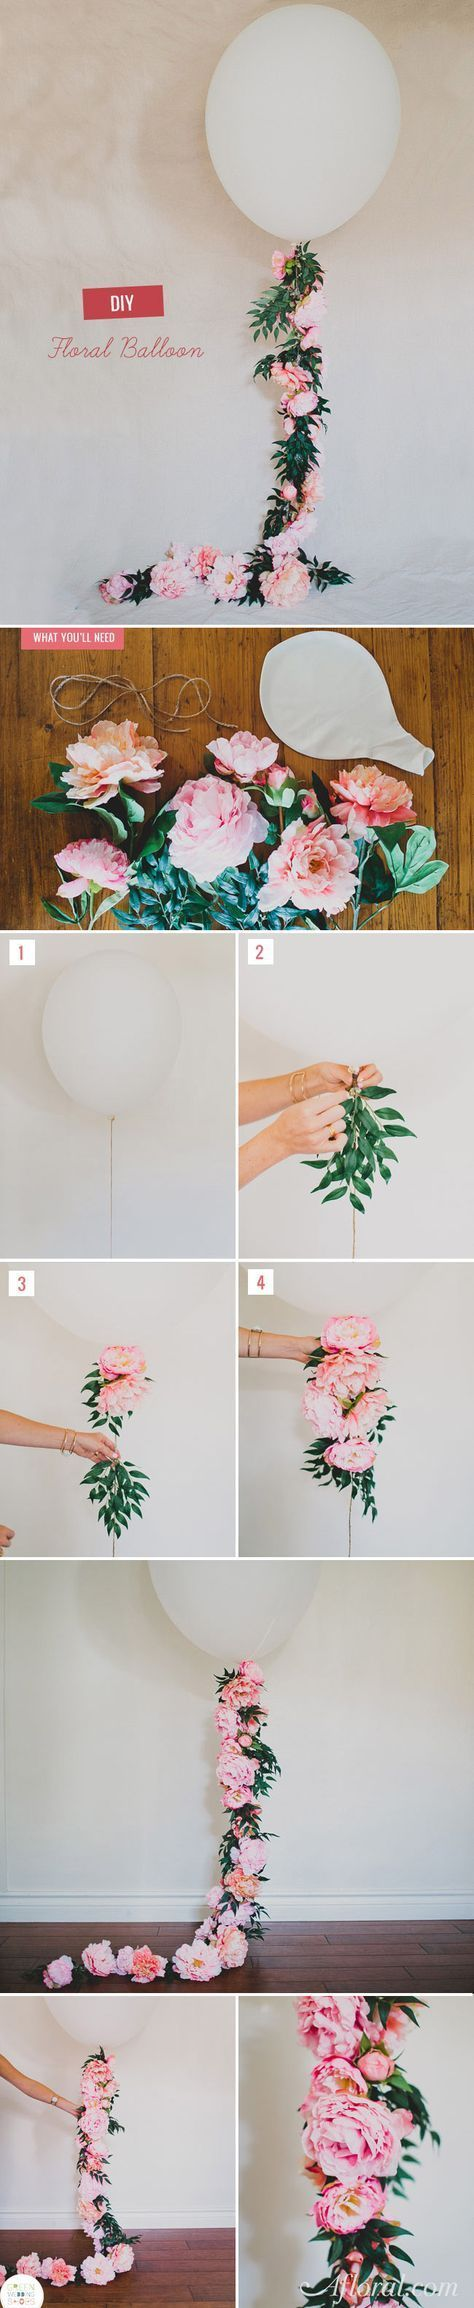 Decorate your wedding, bridal or baby shower with this adorable floral balloon designed by Green Wedding Shoes.